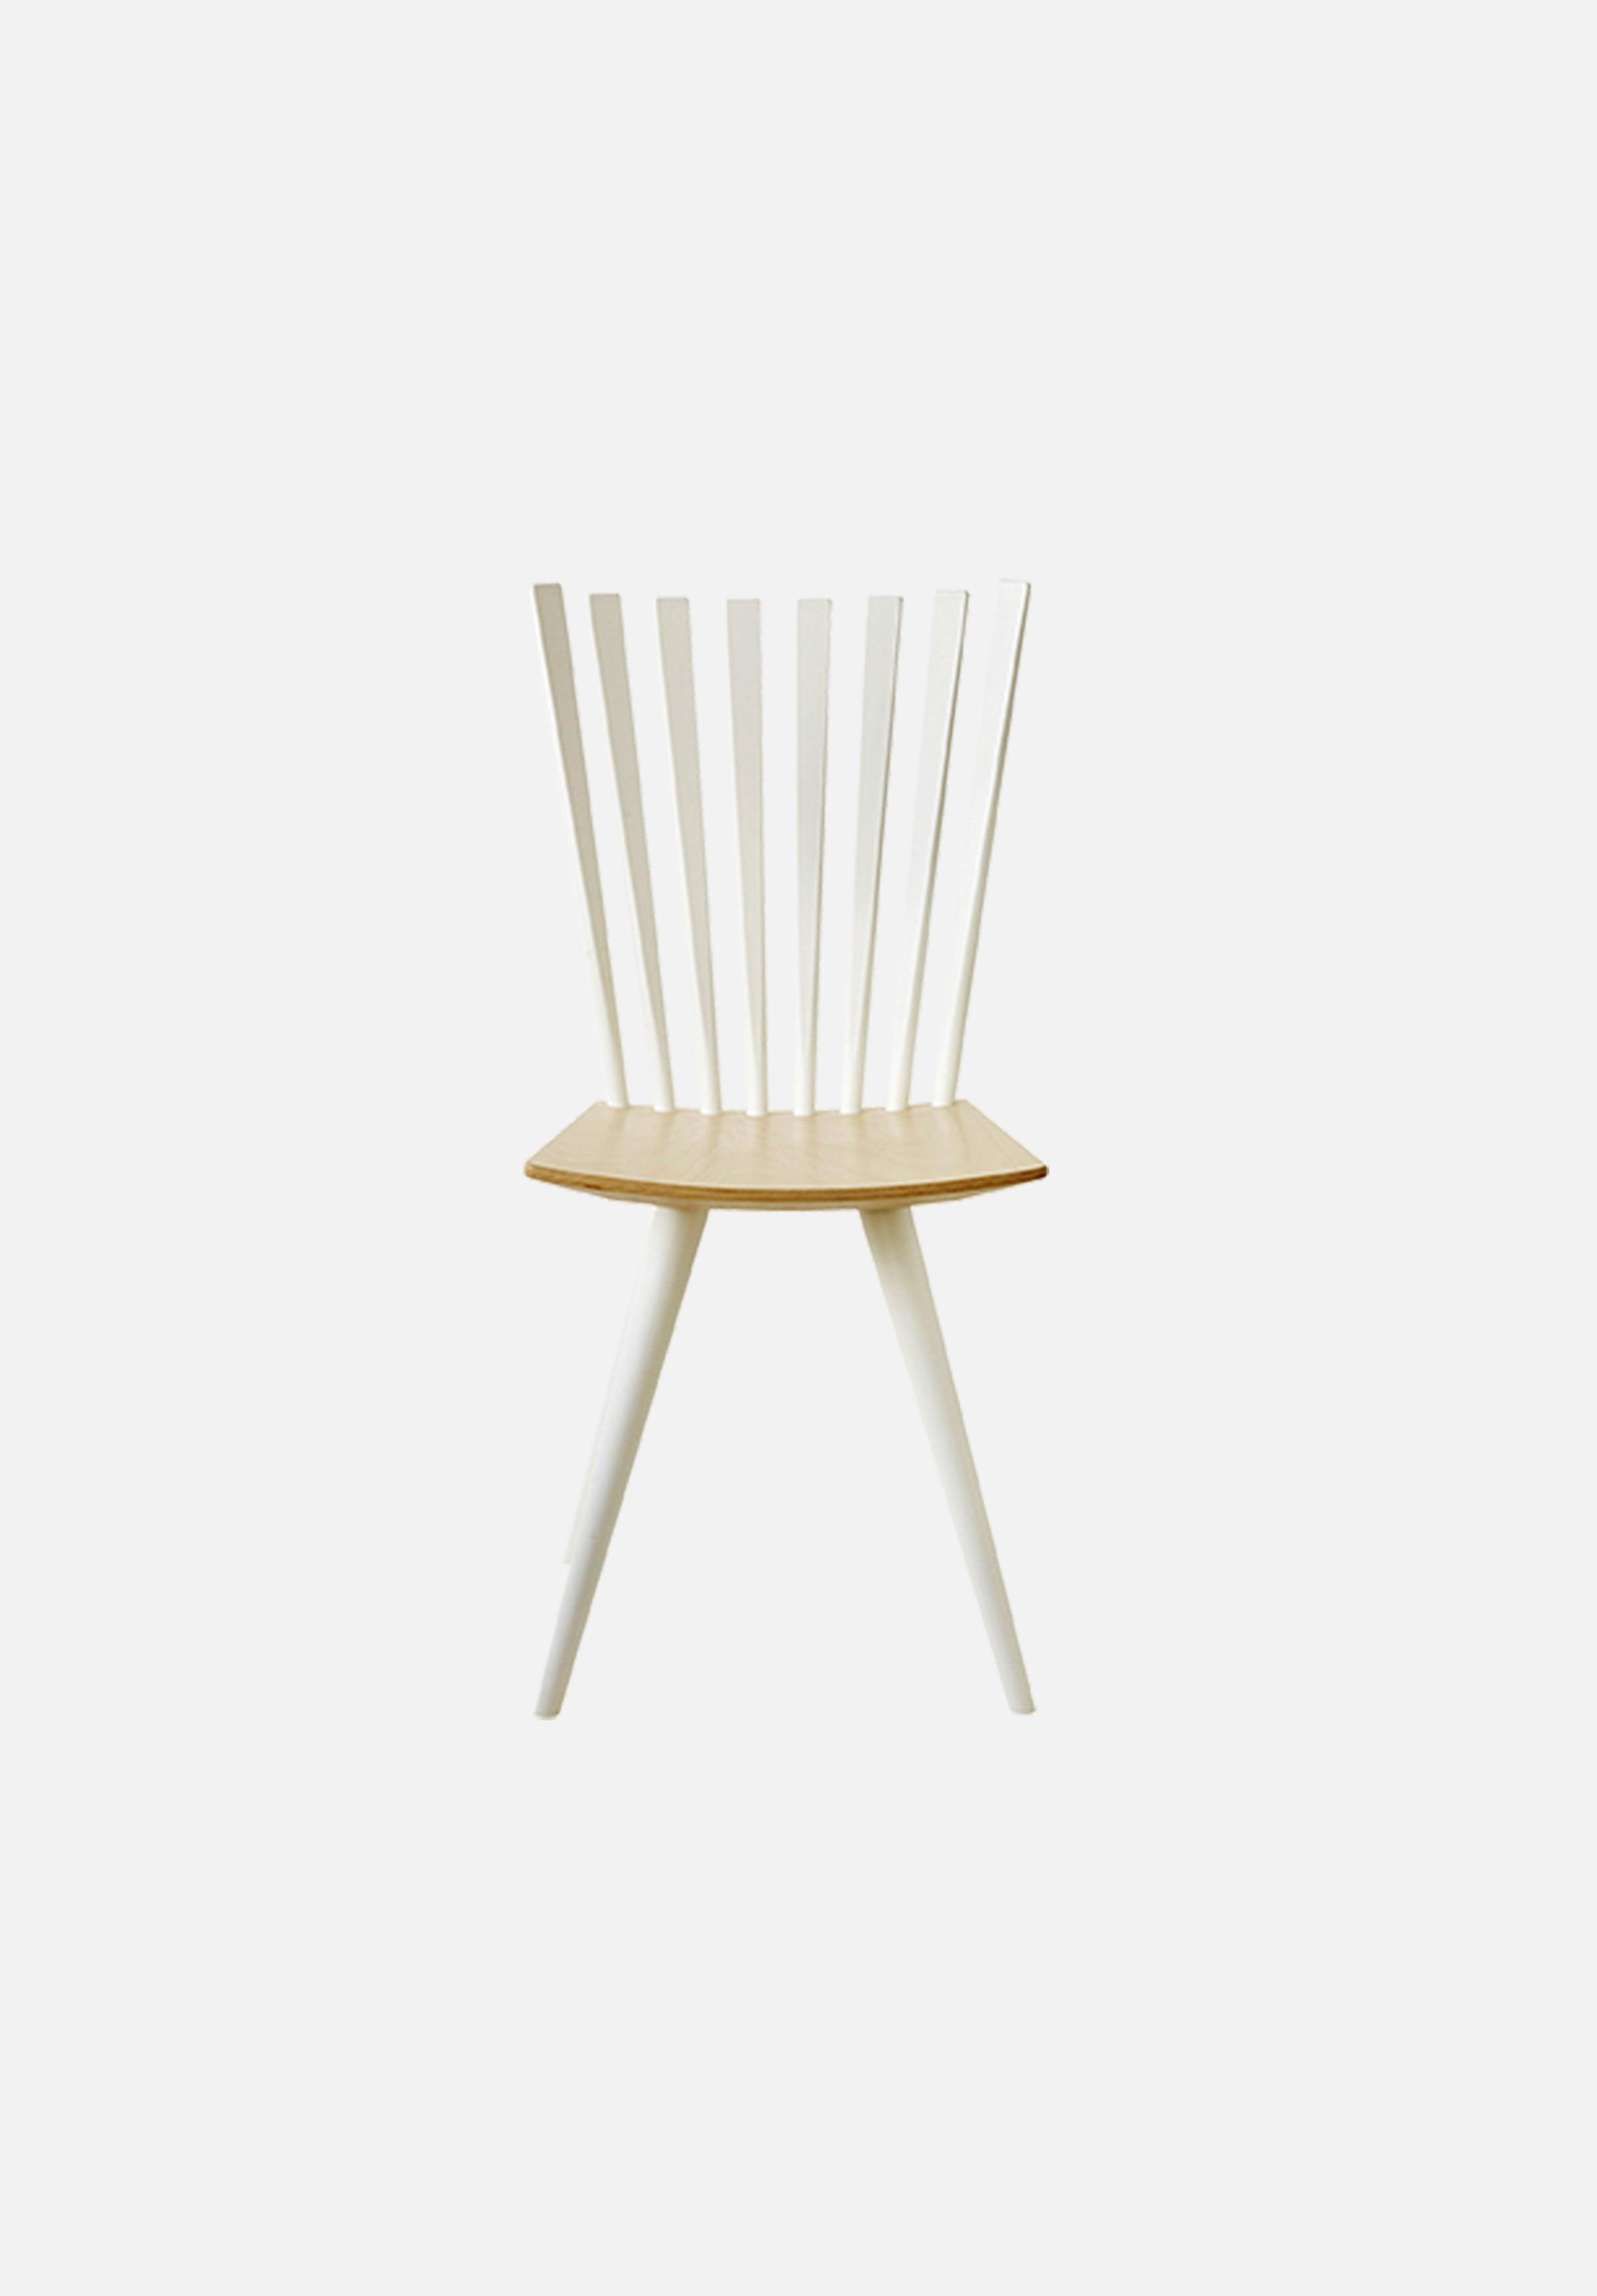 J152 Mikado Chair Foersom & Hiort Lorenzen FDB Møbler White/Natural Danish Design Furniture Chairs Average Toronto Canada Design Store